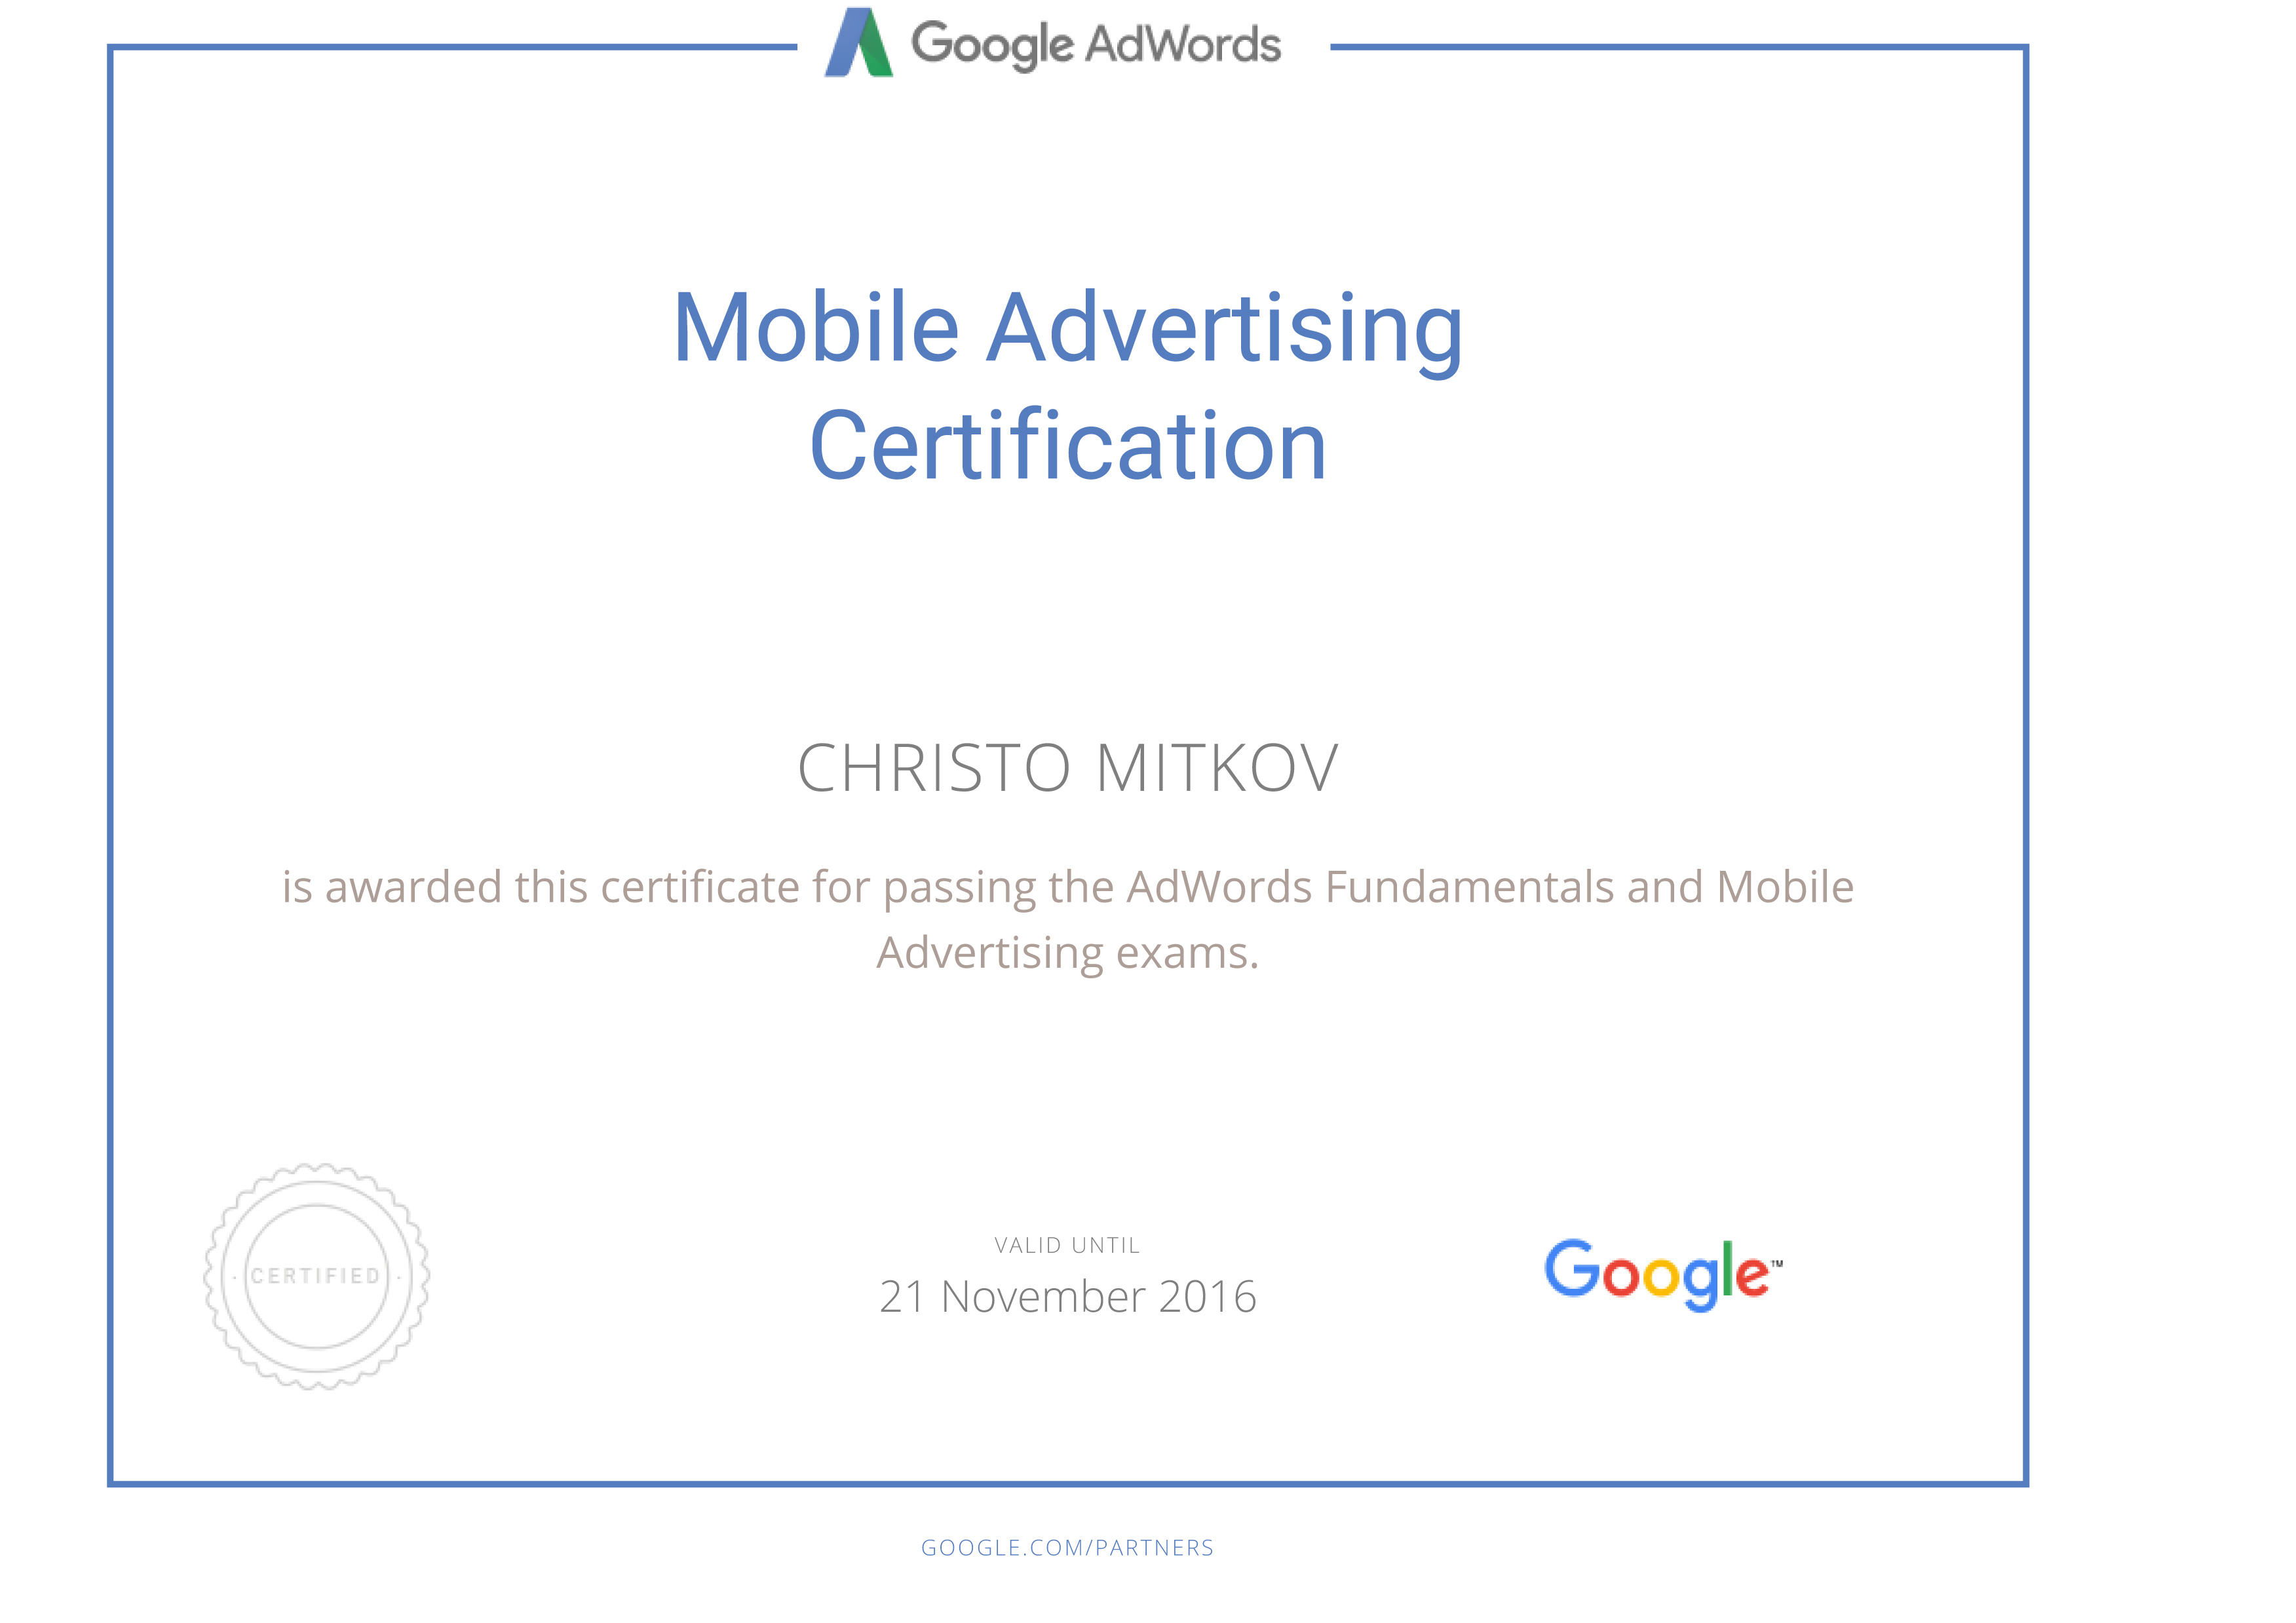 Google Adwords Mobile Advertising Certificate 2016